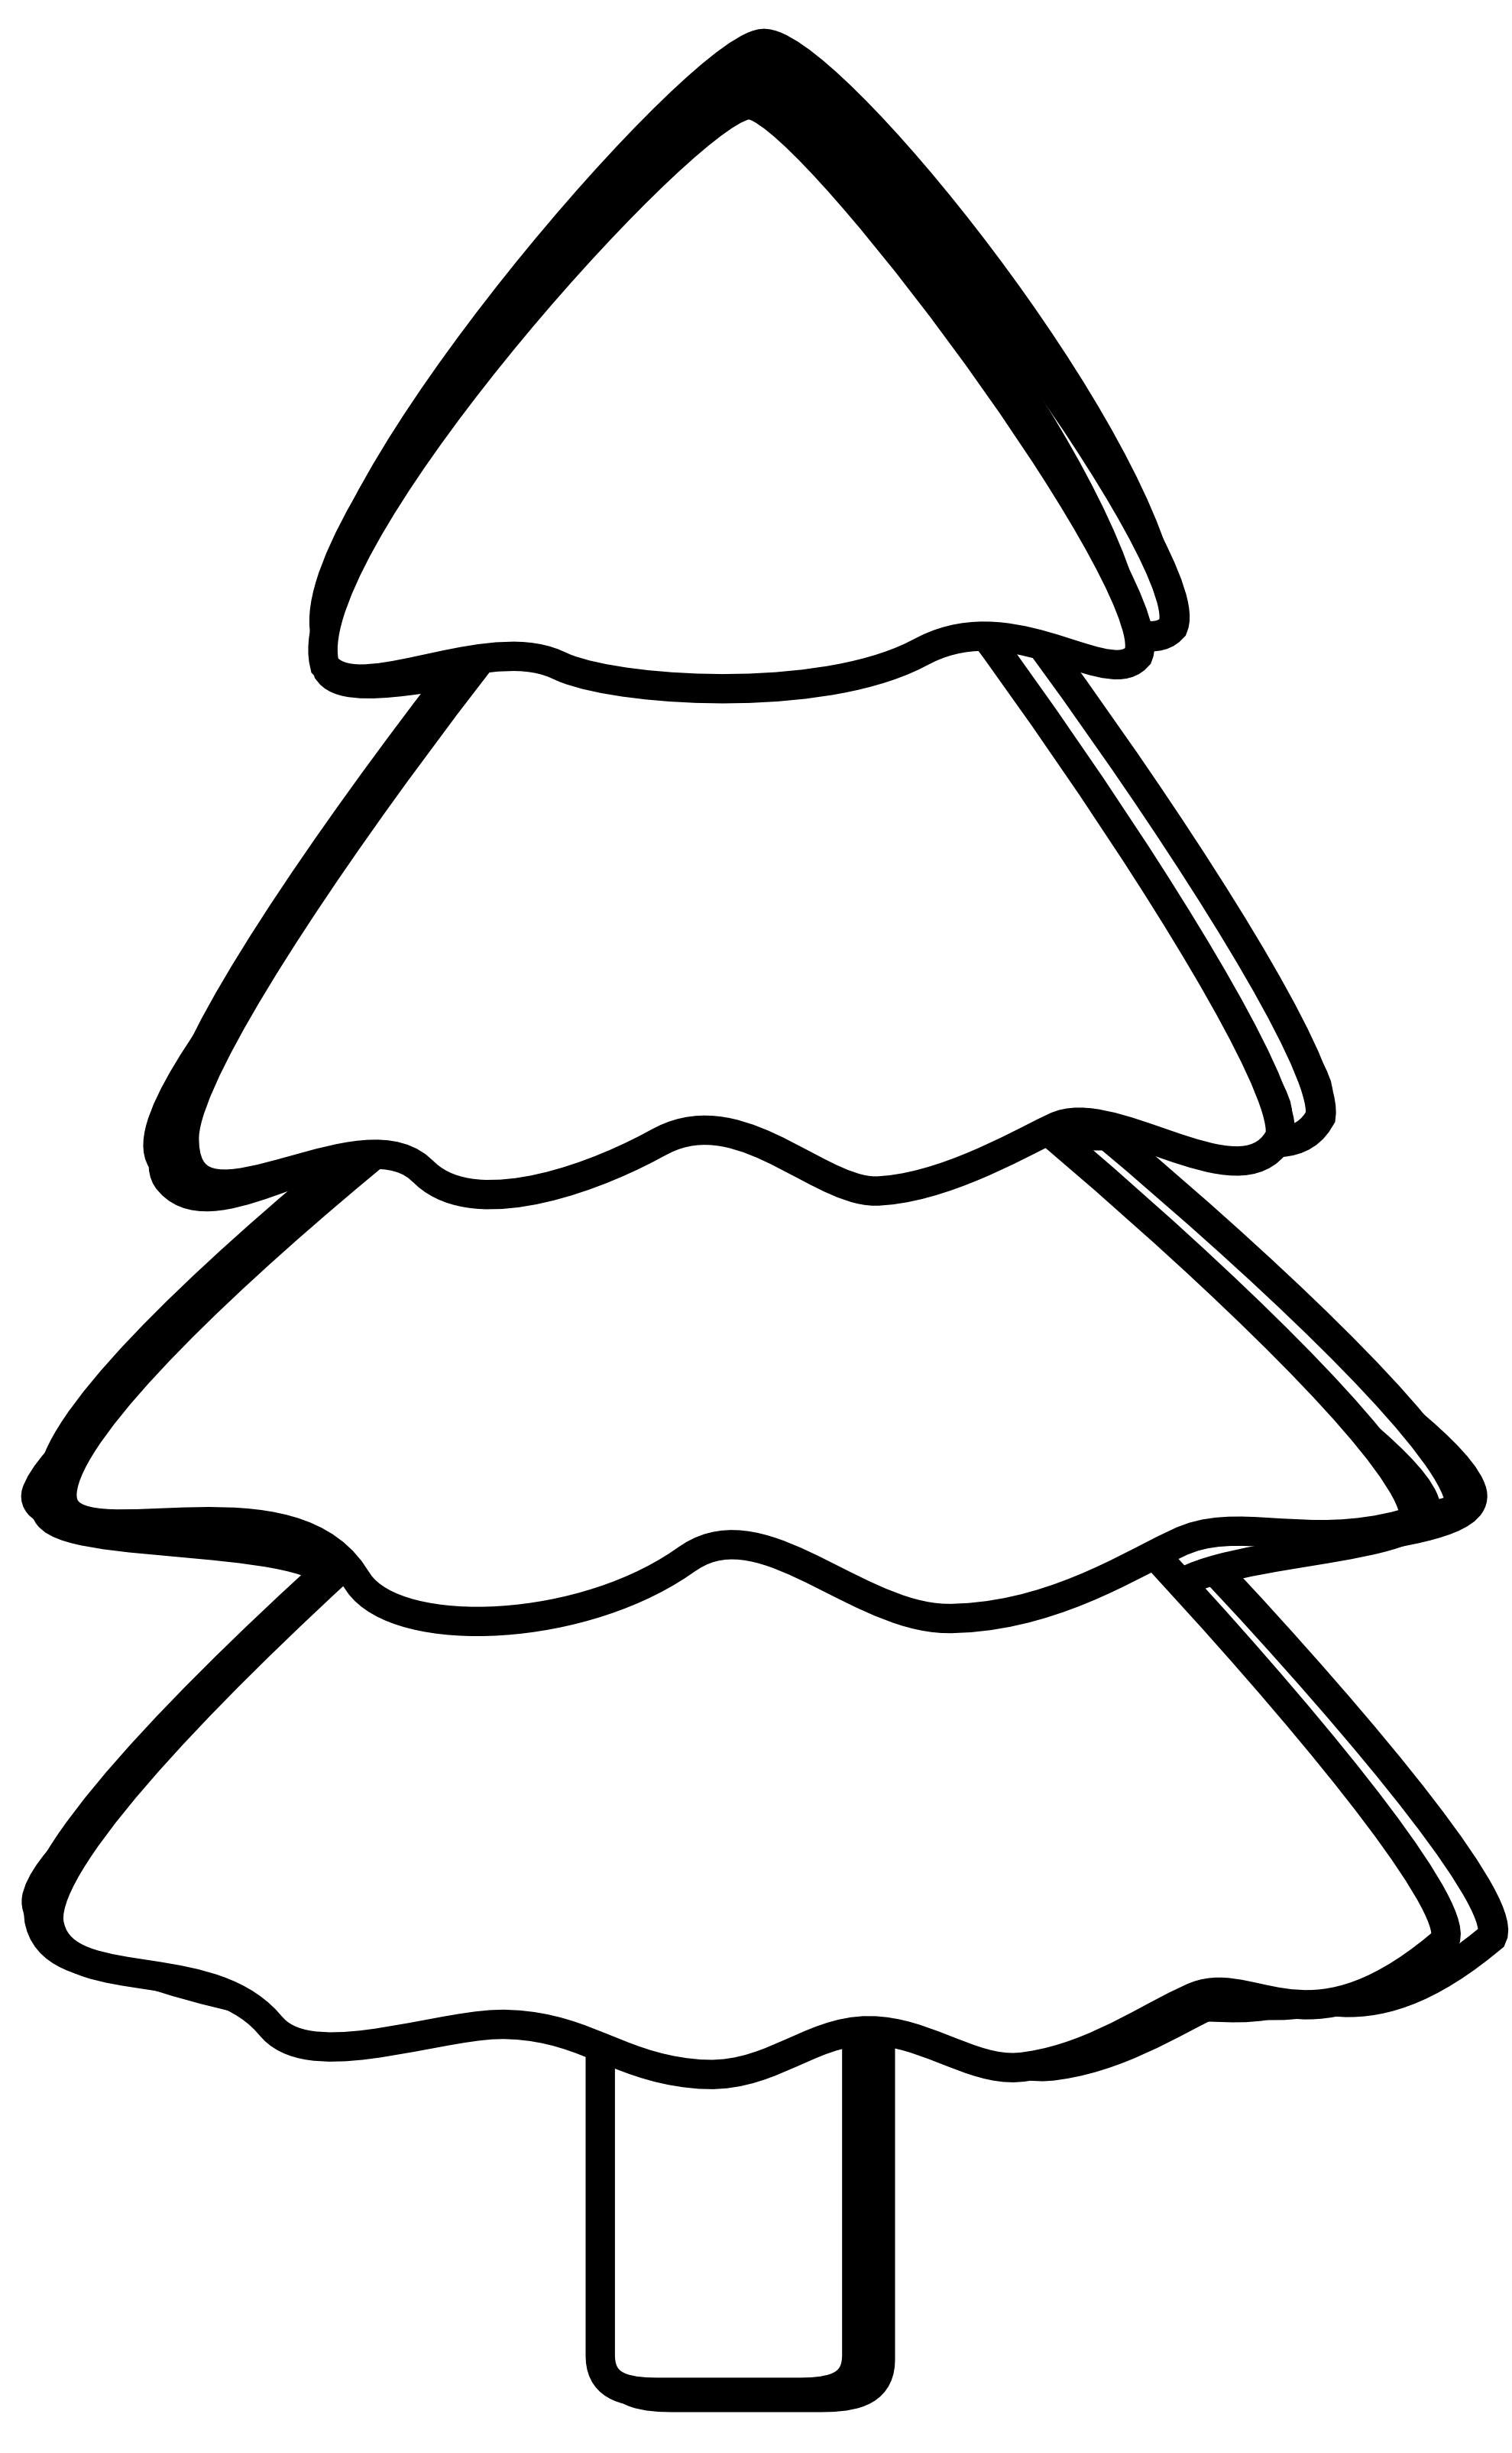 christmas tree clipart black and white clipart panda free rh clipartpanda com christmas tree with presents clipart black and white christmas tree decorations clipart black and white